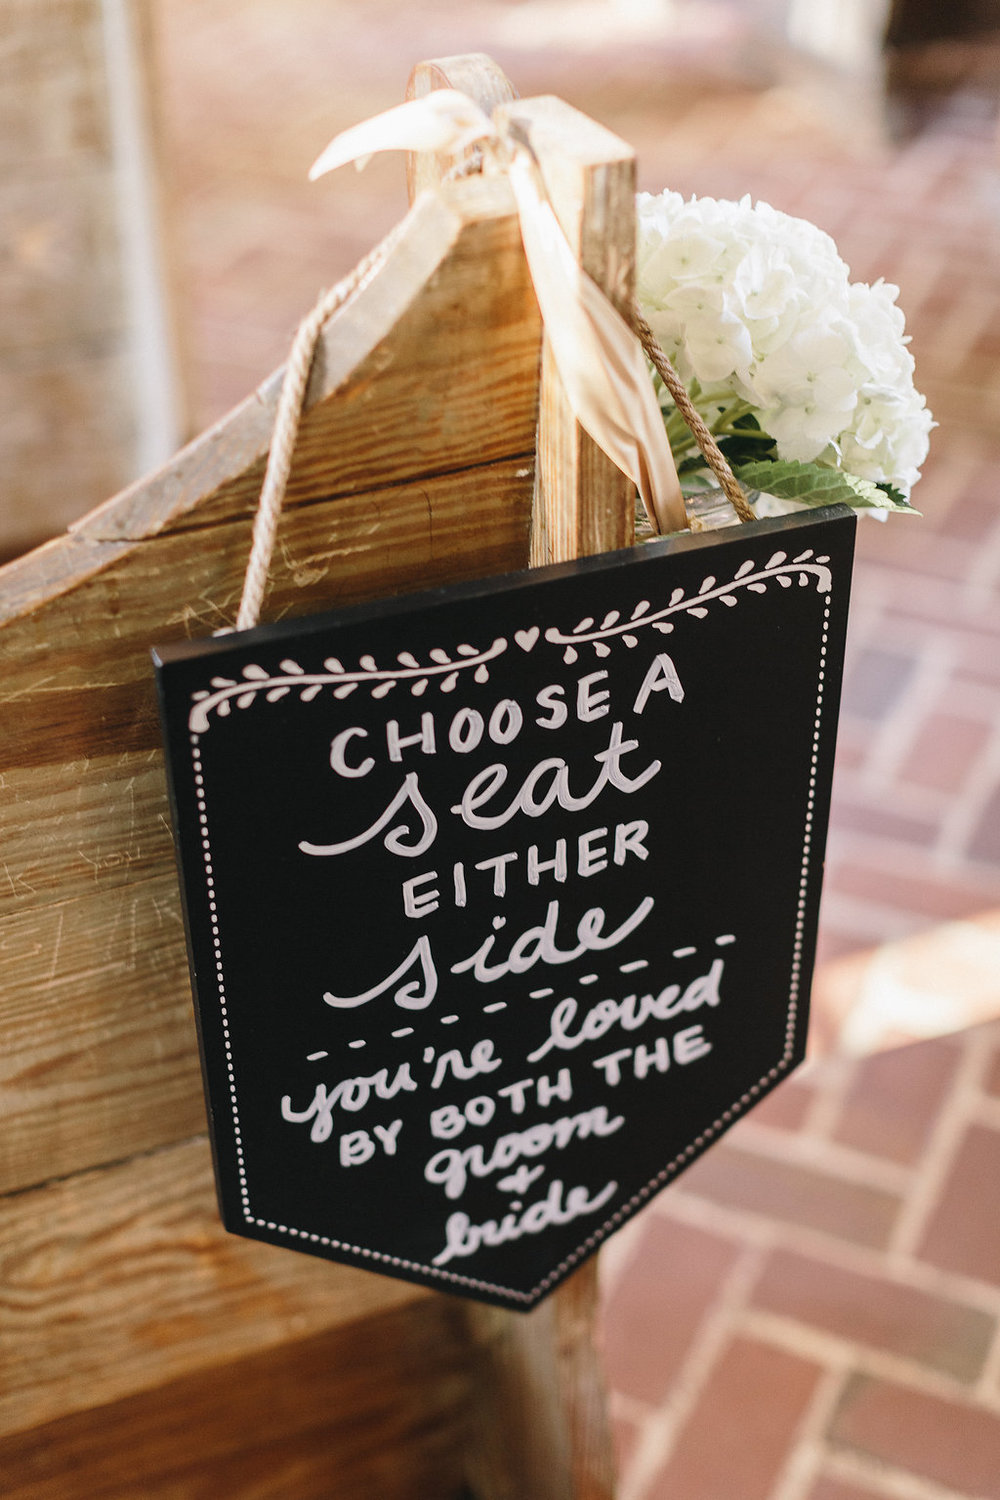 Lowcountry wedding ceremony sign in Savannah, Georgia by Mackensey Alexander